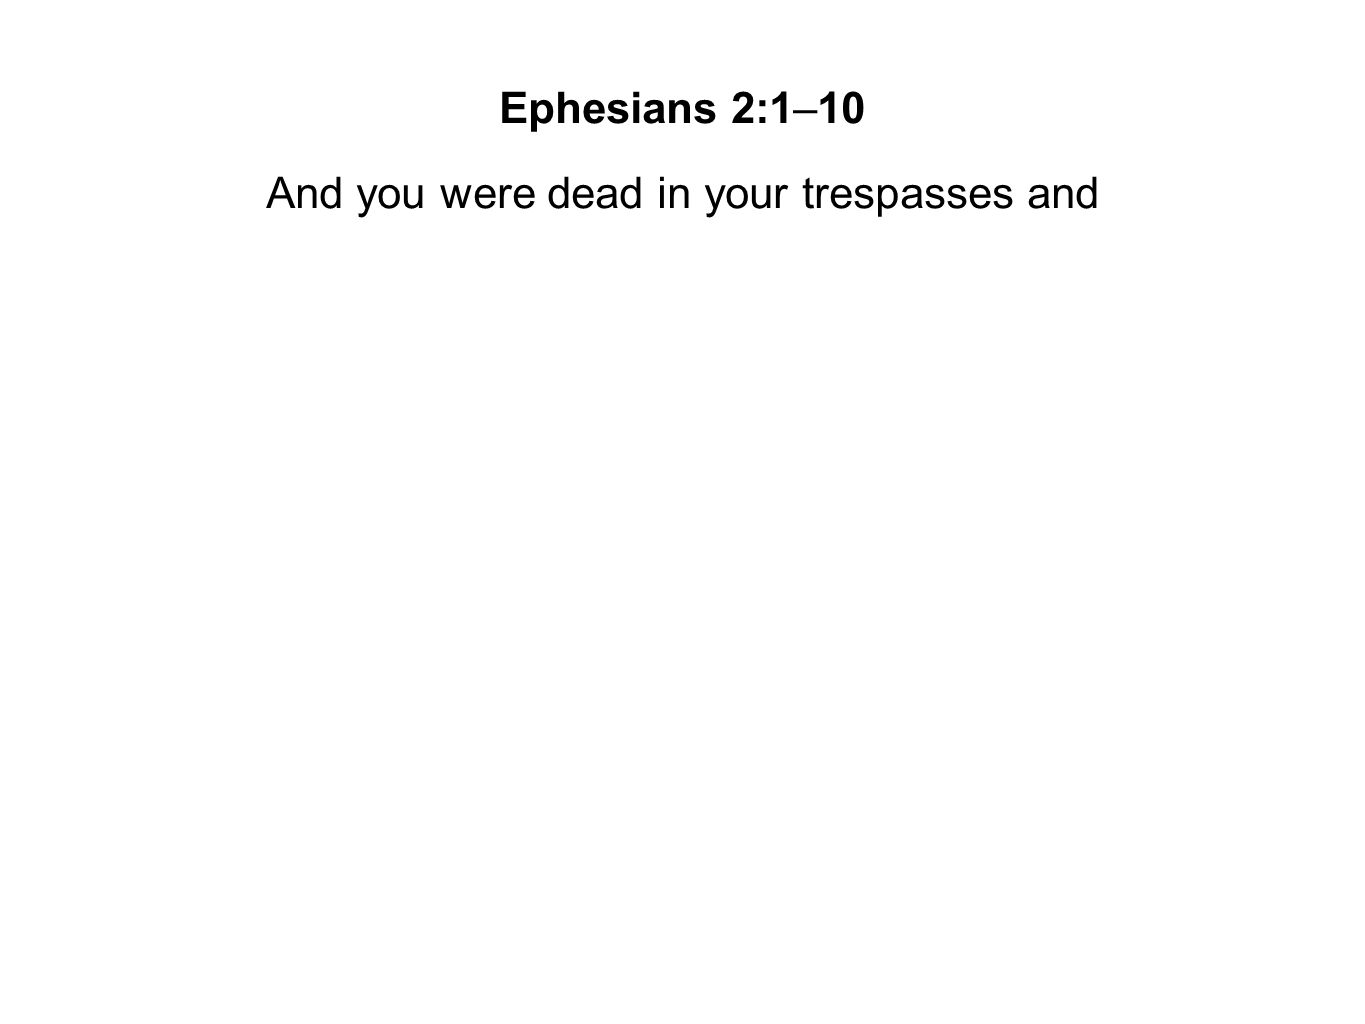 And you were dead in your trespasses and